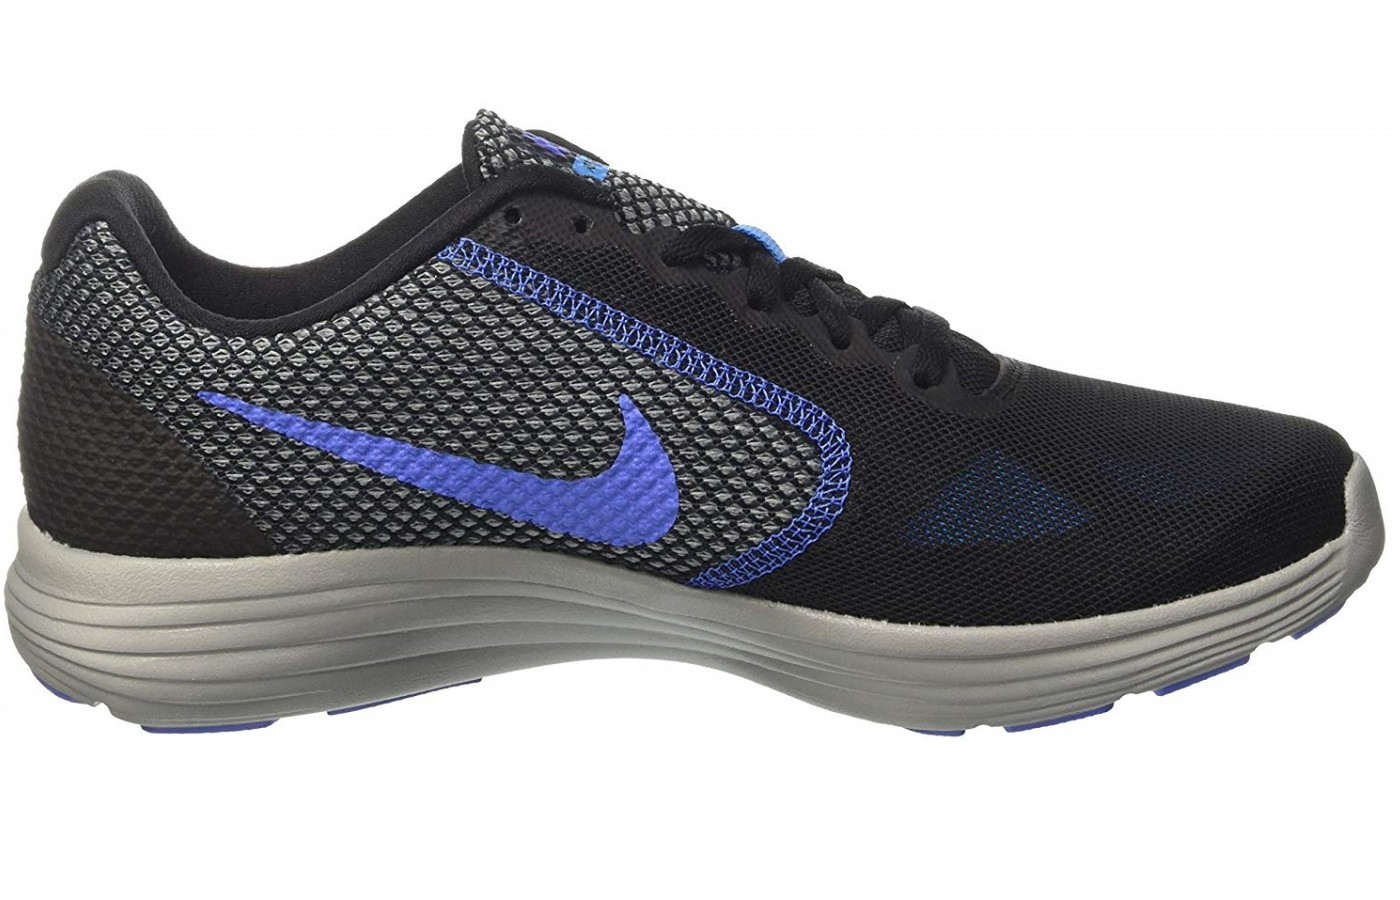 Nike Revolution 3 Side View 2